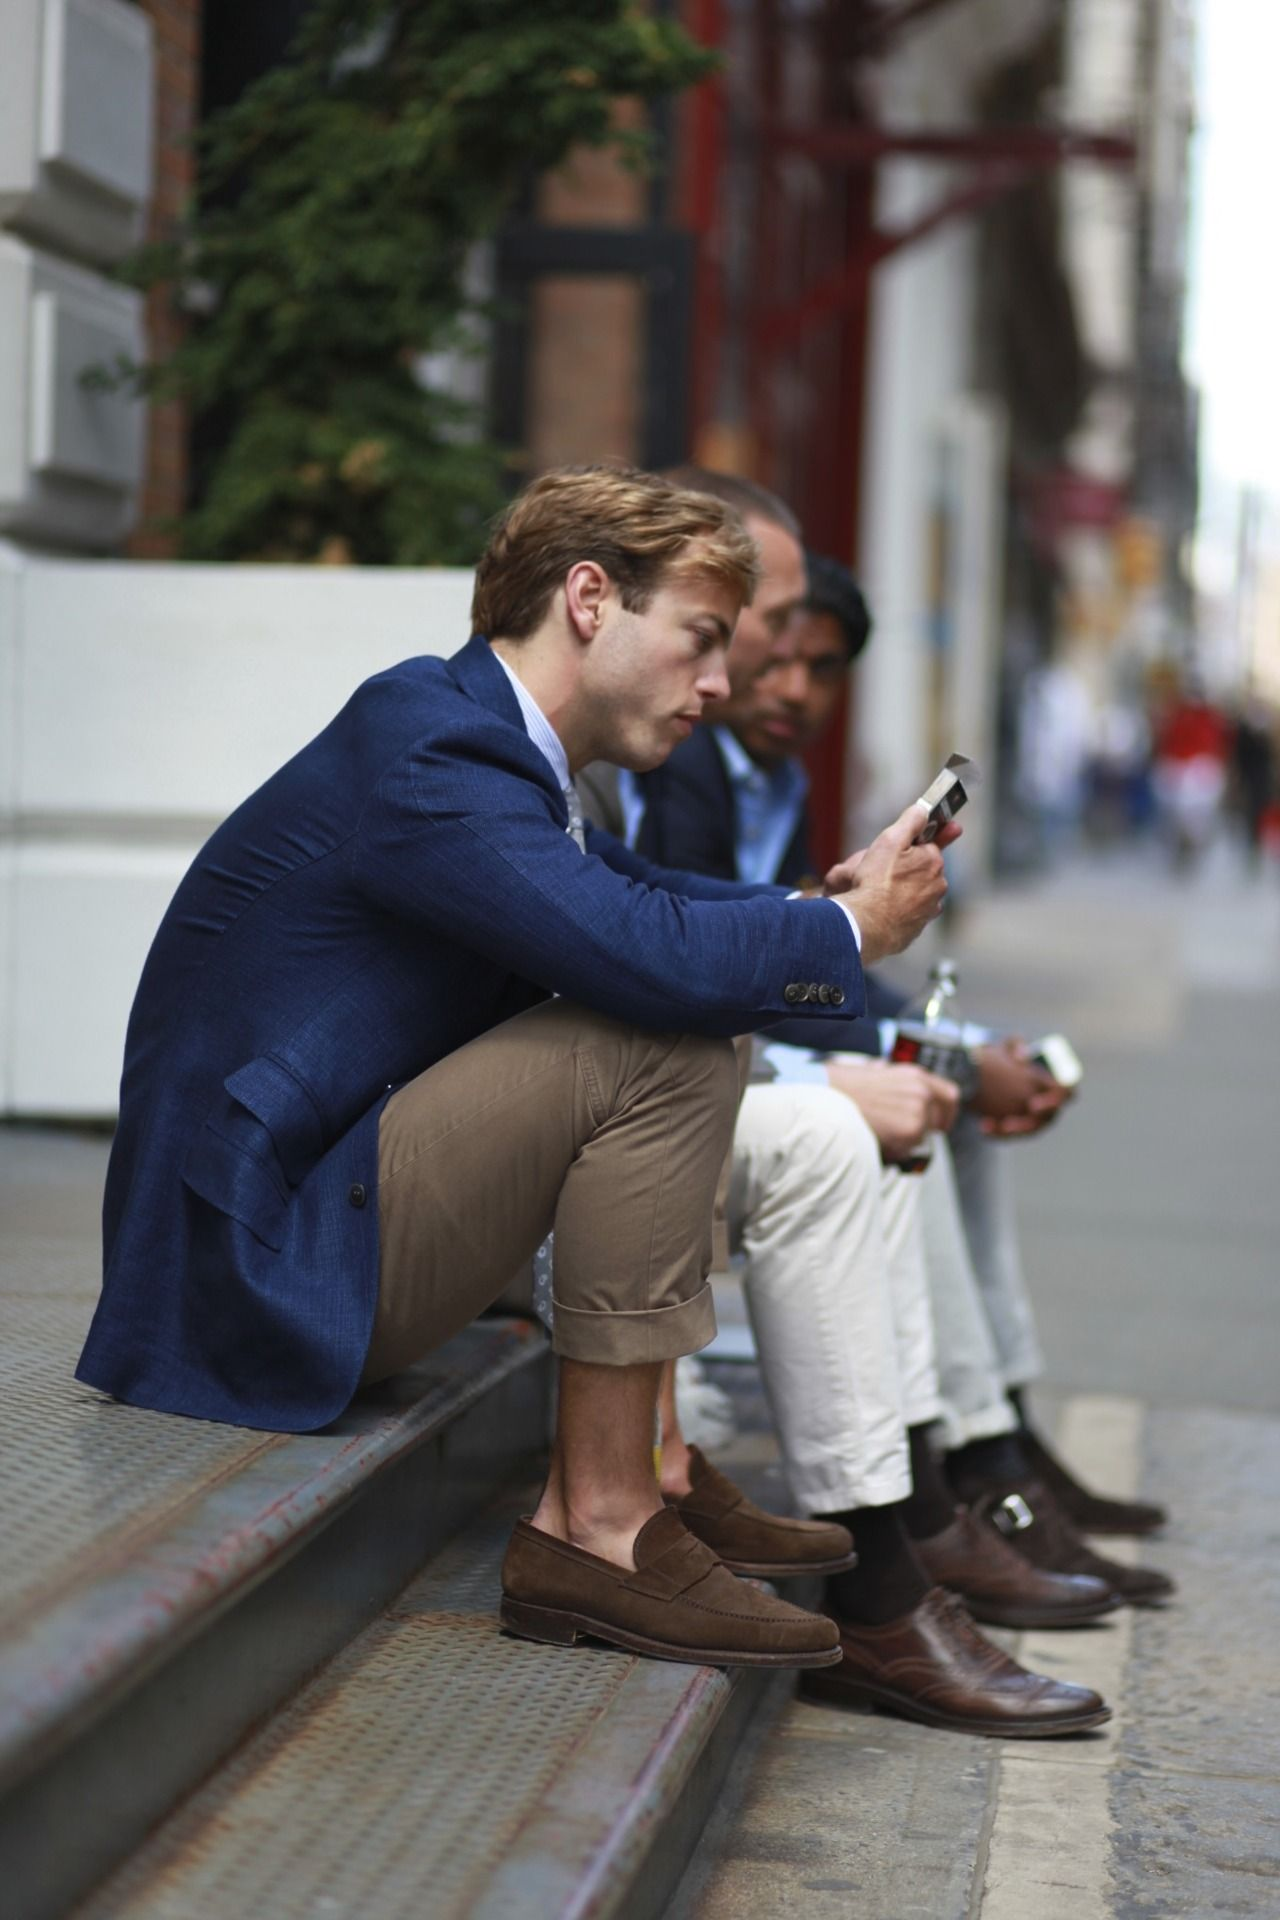 Guys on a stoop texting. Boy is wearing suede loafers with no socks, rolled up chinos, a blue blazer and blonde hair.